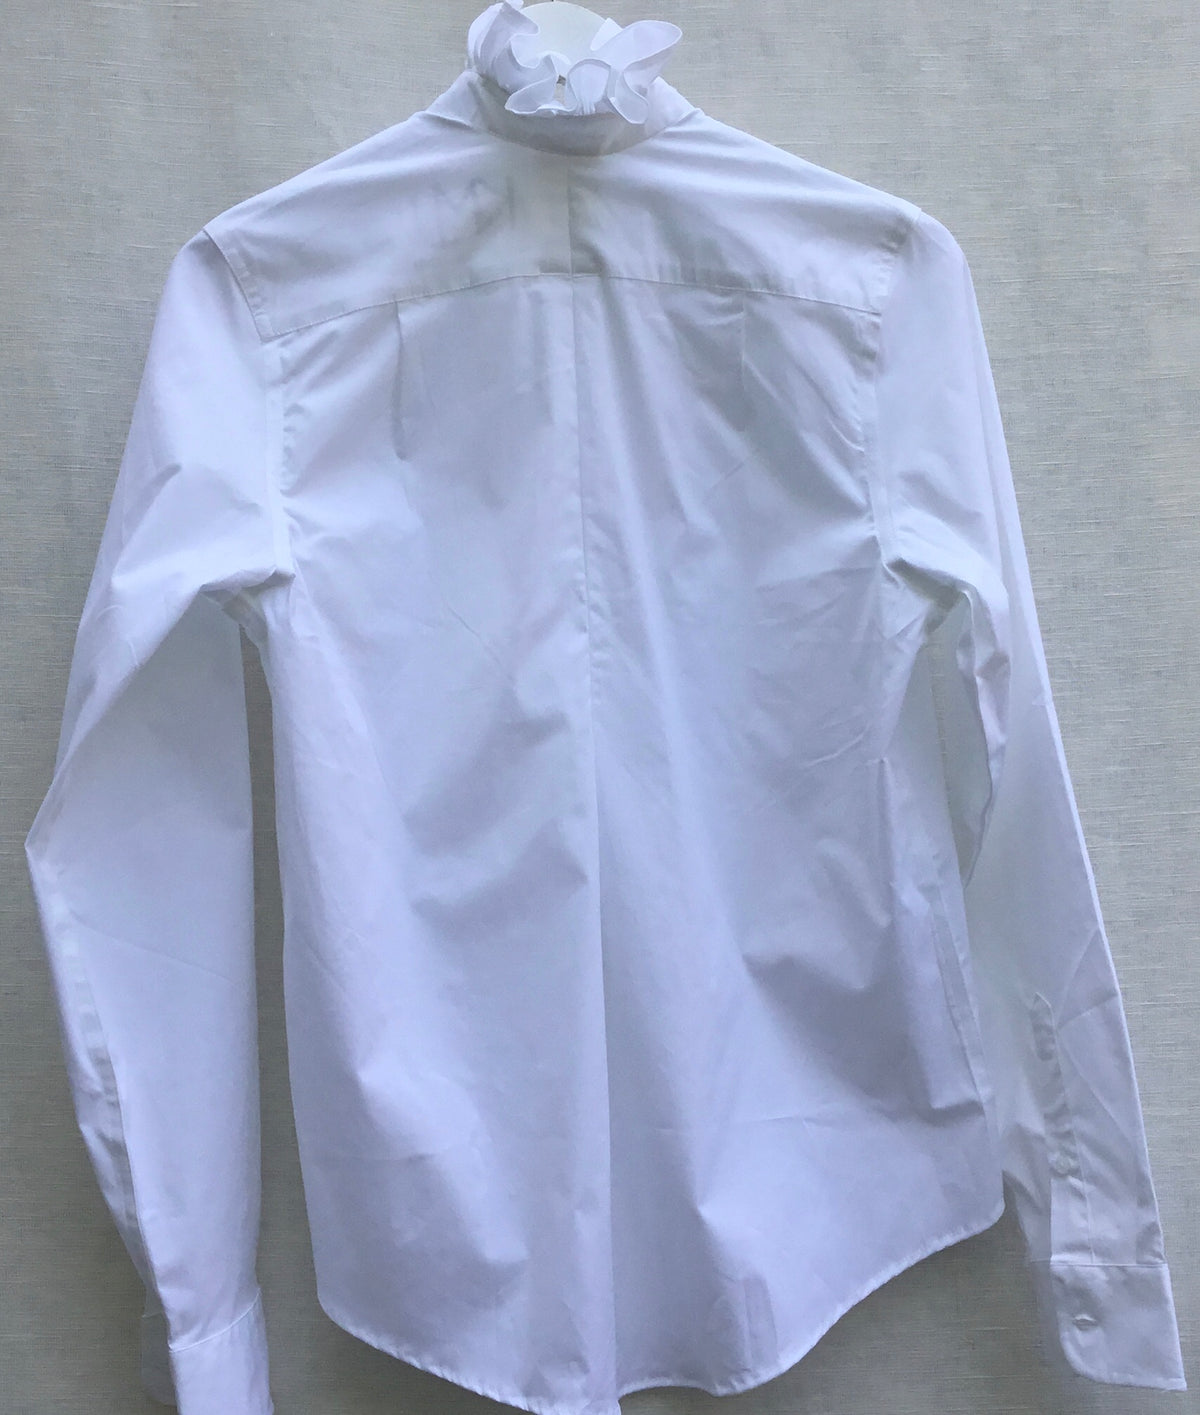 KMJ Quarantina Tops - Size Small